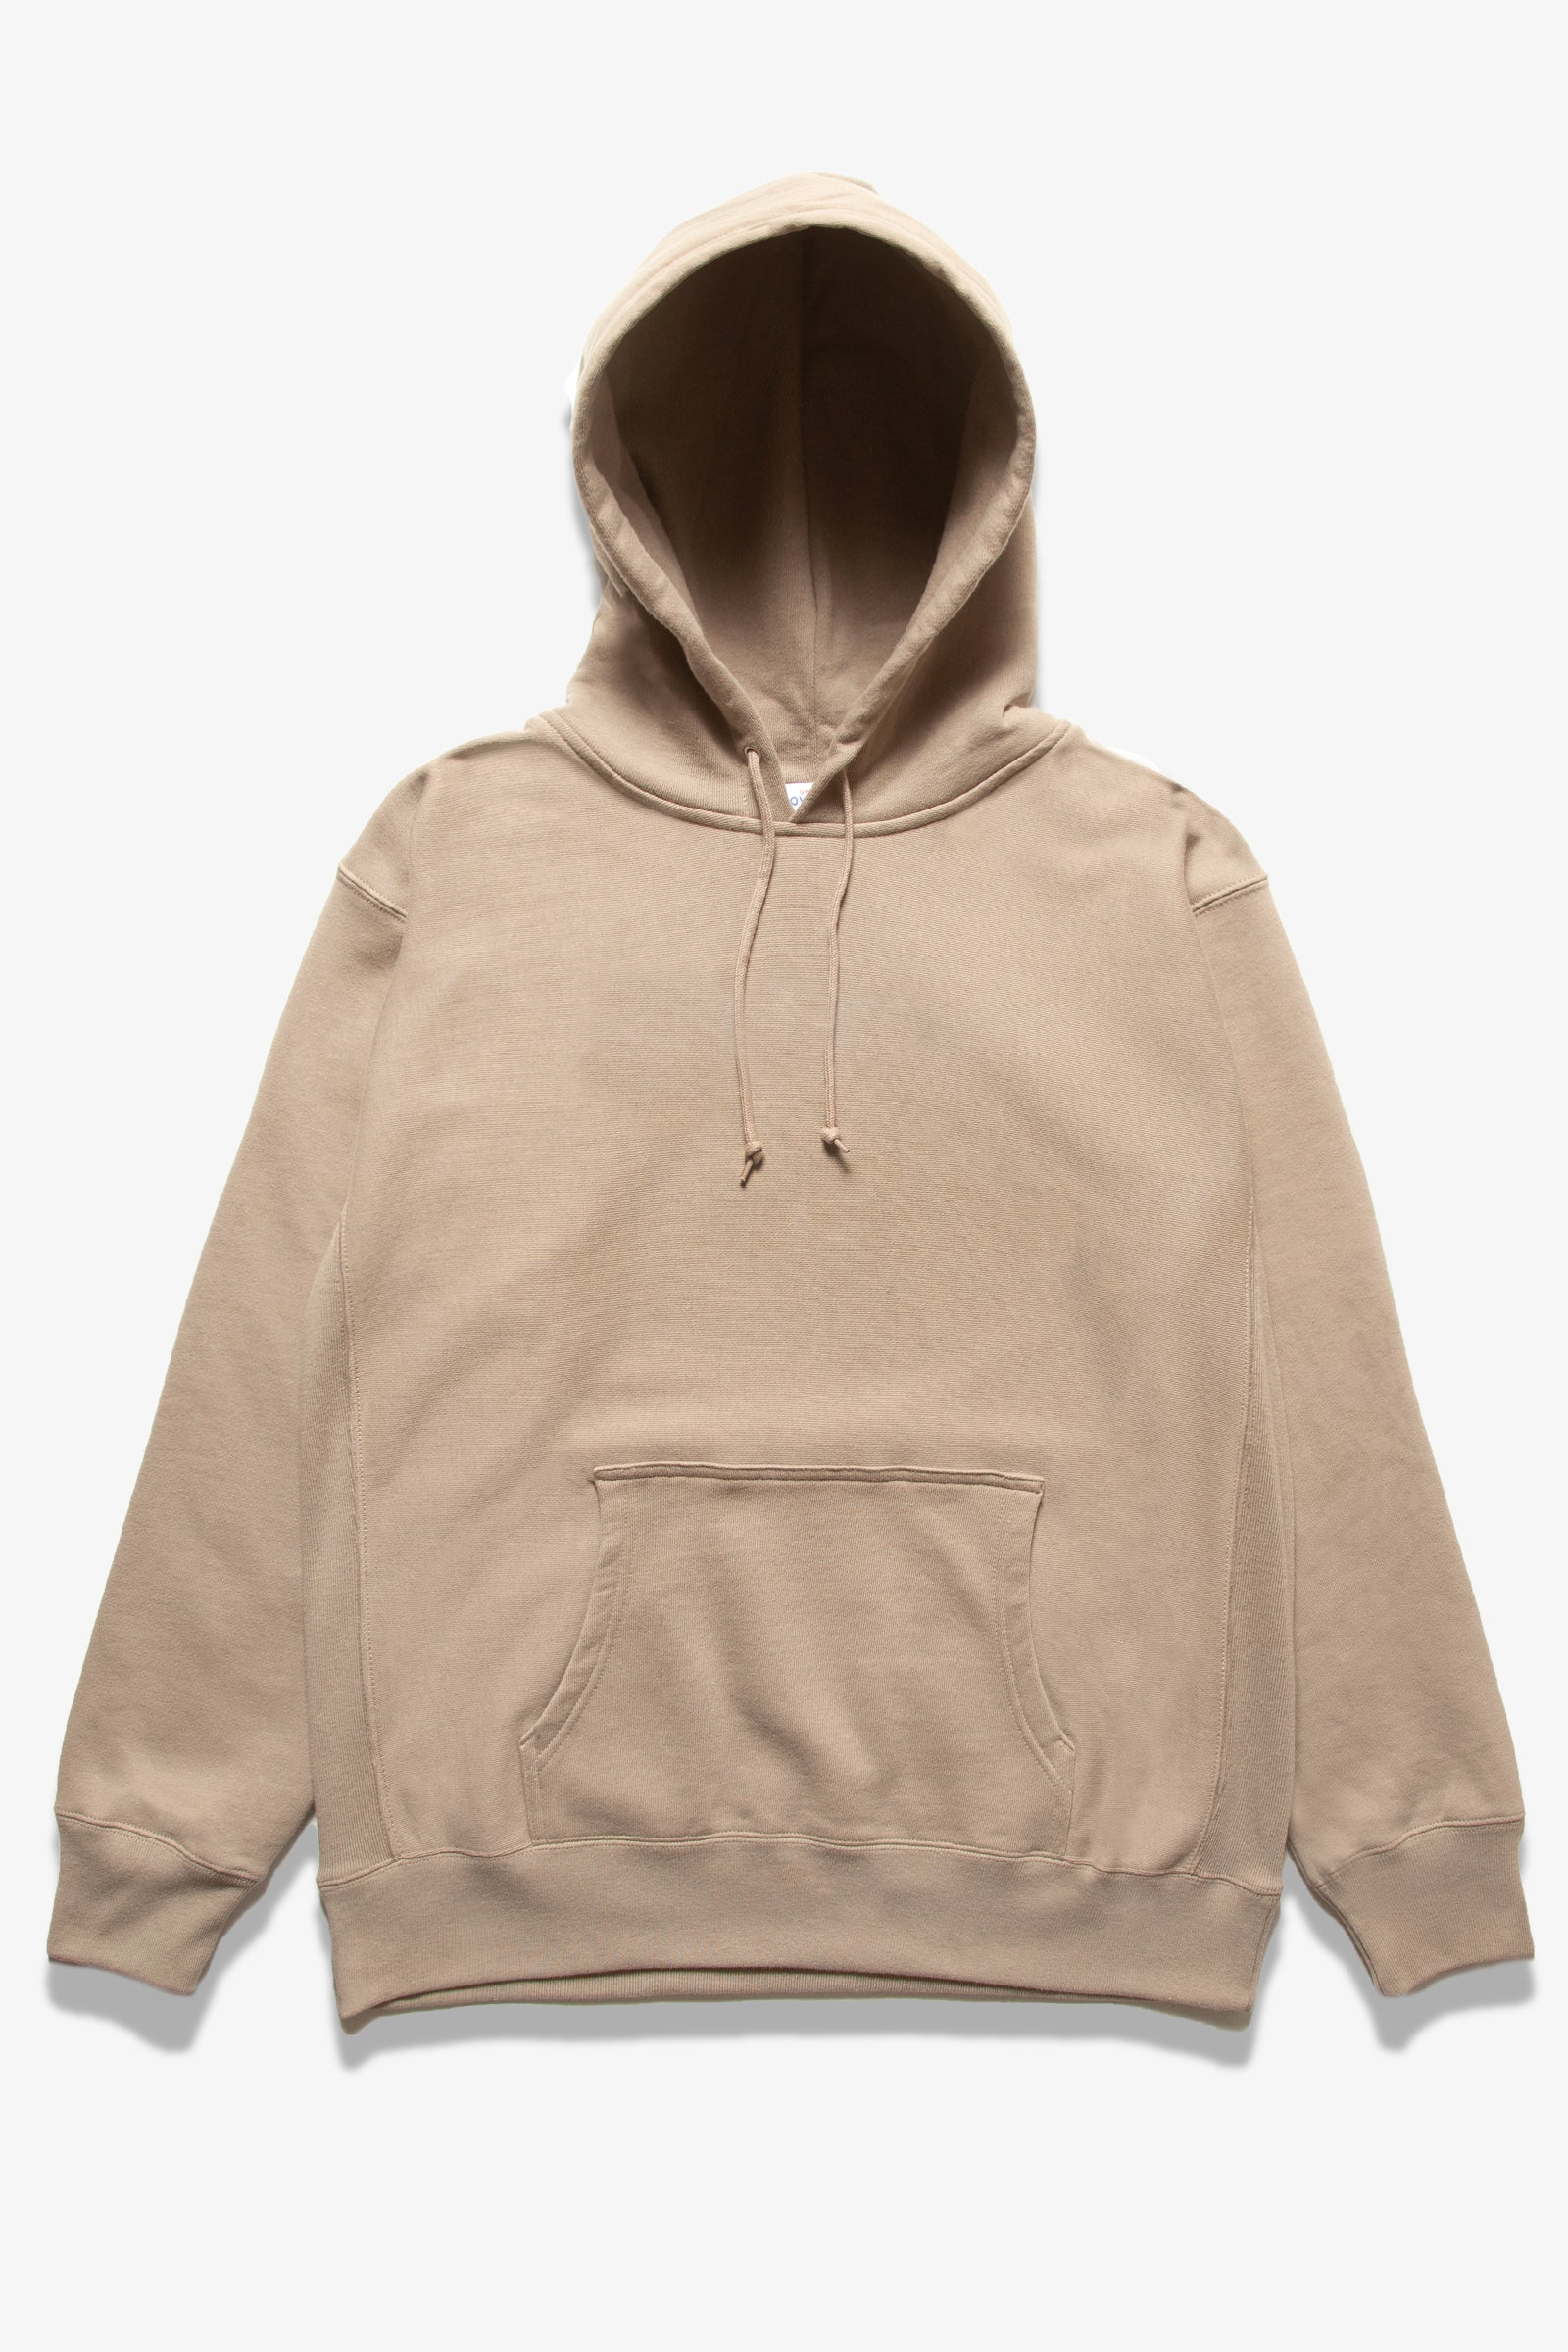 Power House - 12oz Hoodie - Morel